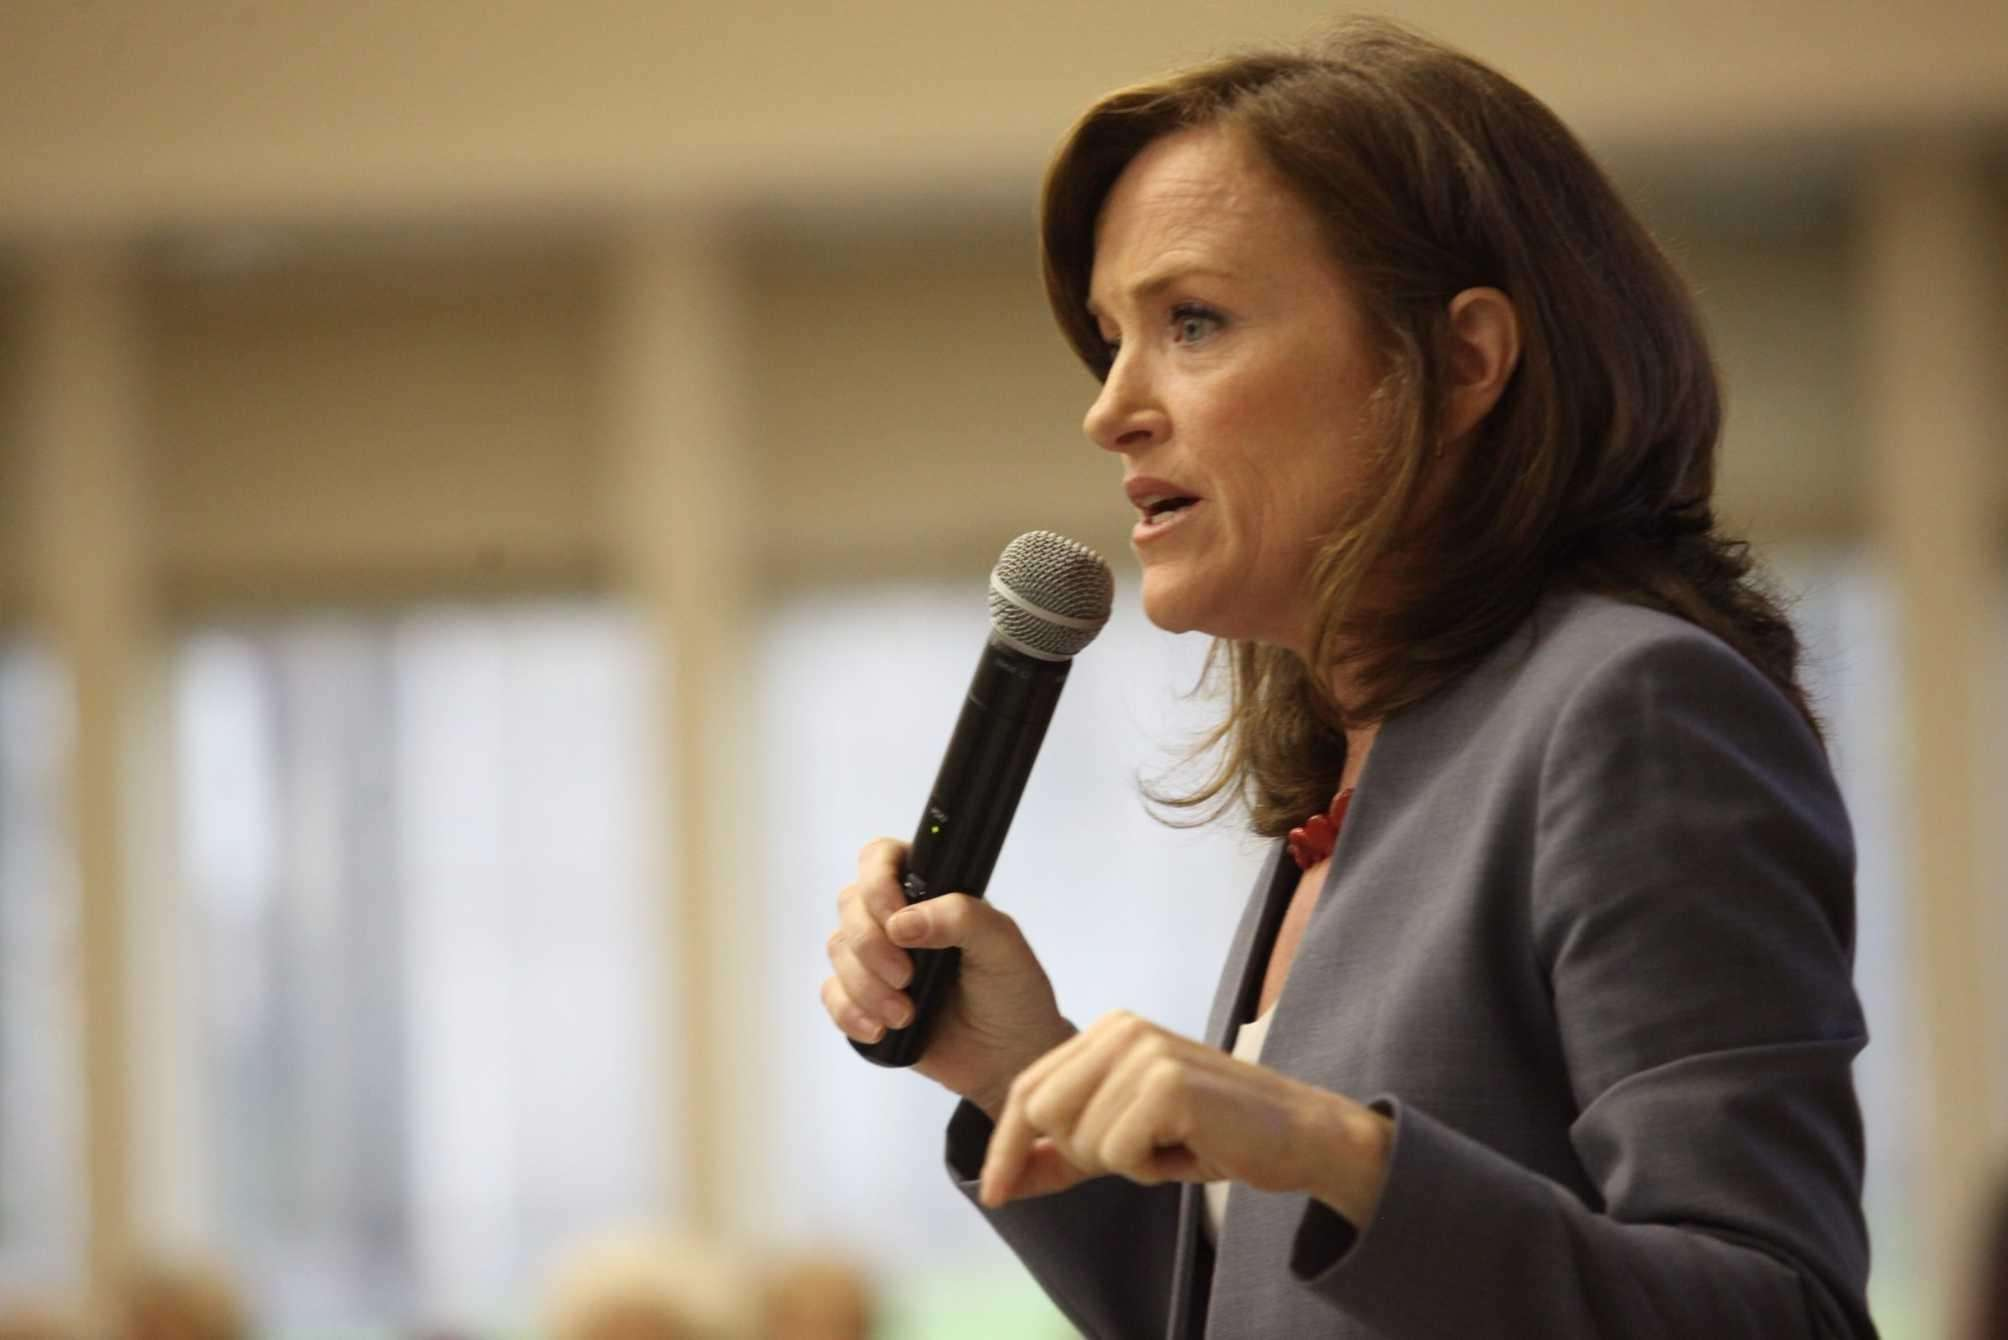 Nassau County District Attorney Kathleen Rice speaks on Tuesday, Sept. 16, 2014 in New Hyde Park.